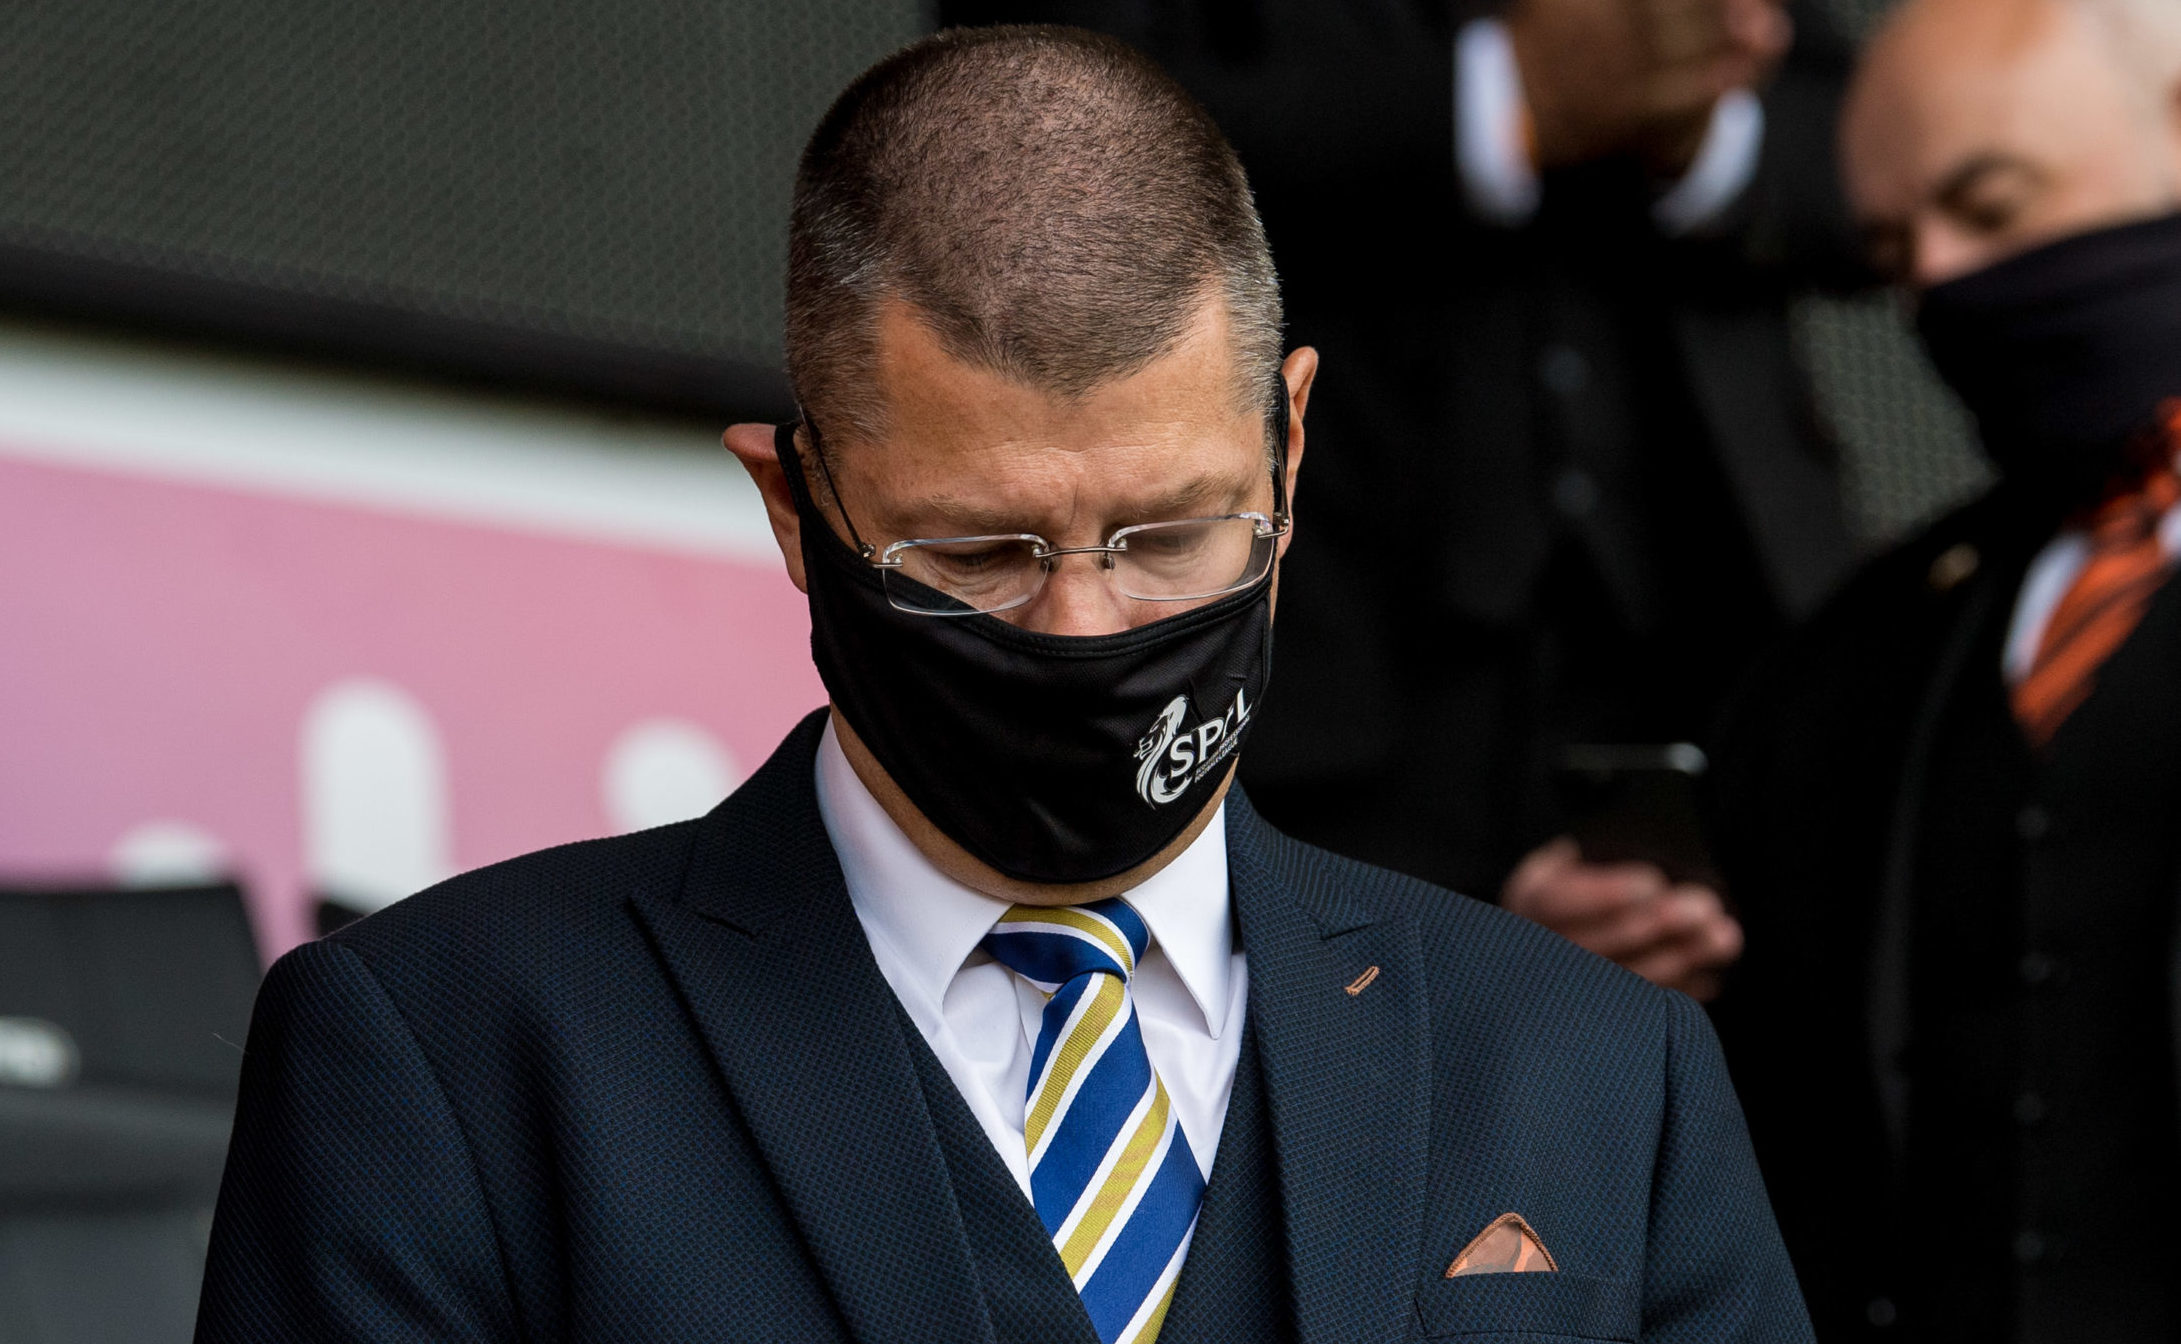 SPFL chief executive Neil Doncaster has had a summer of discontent